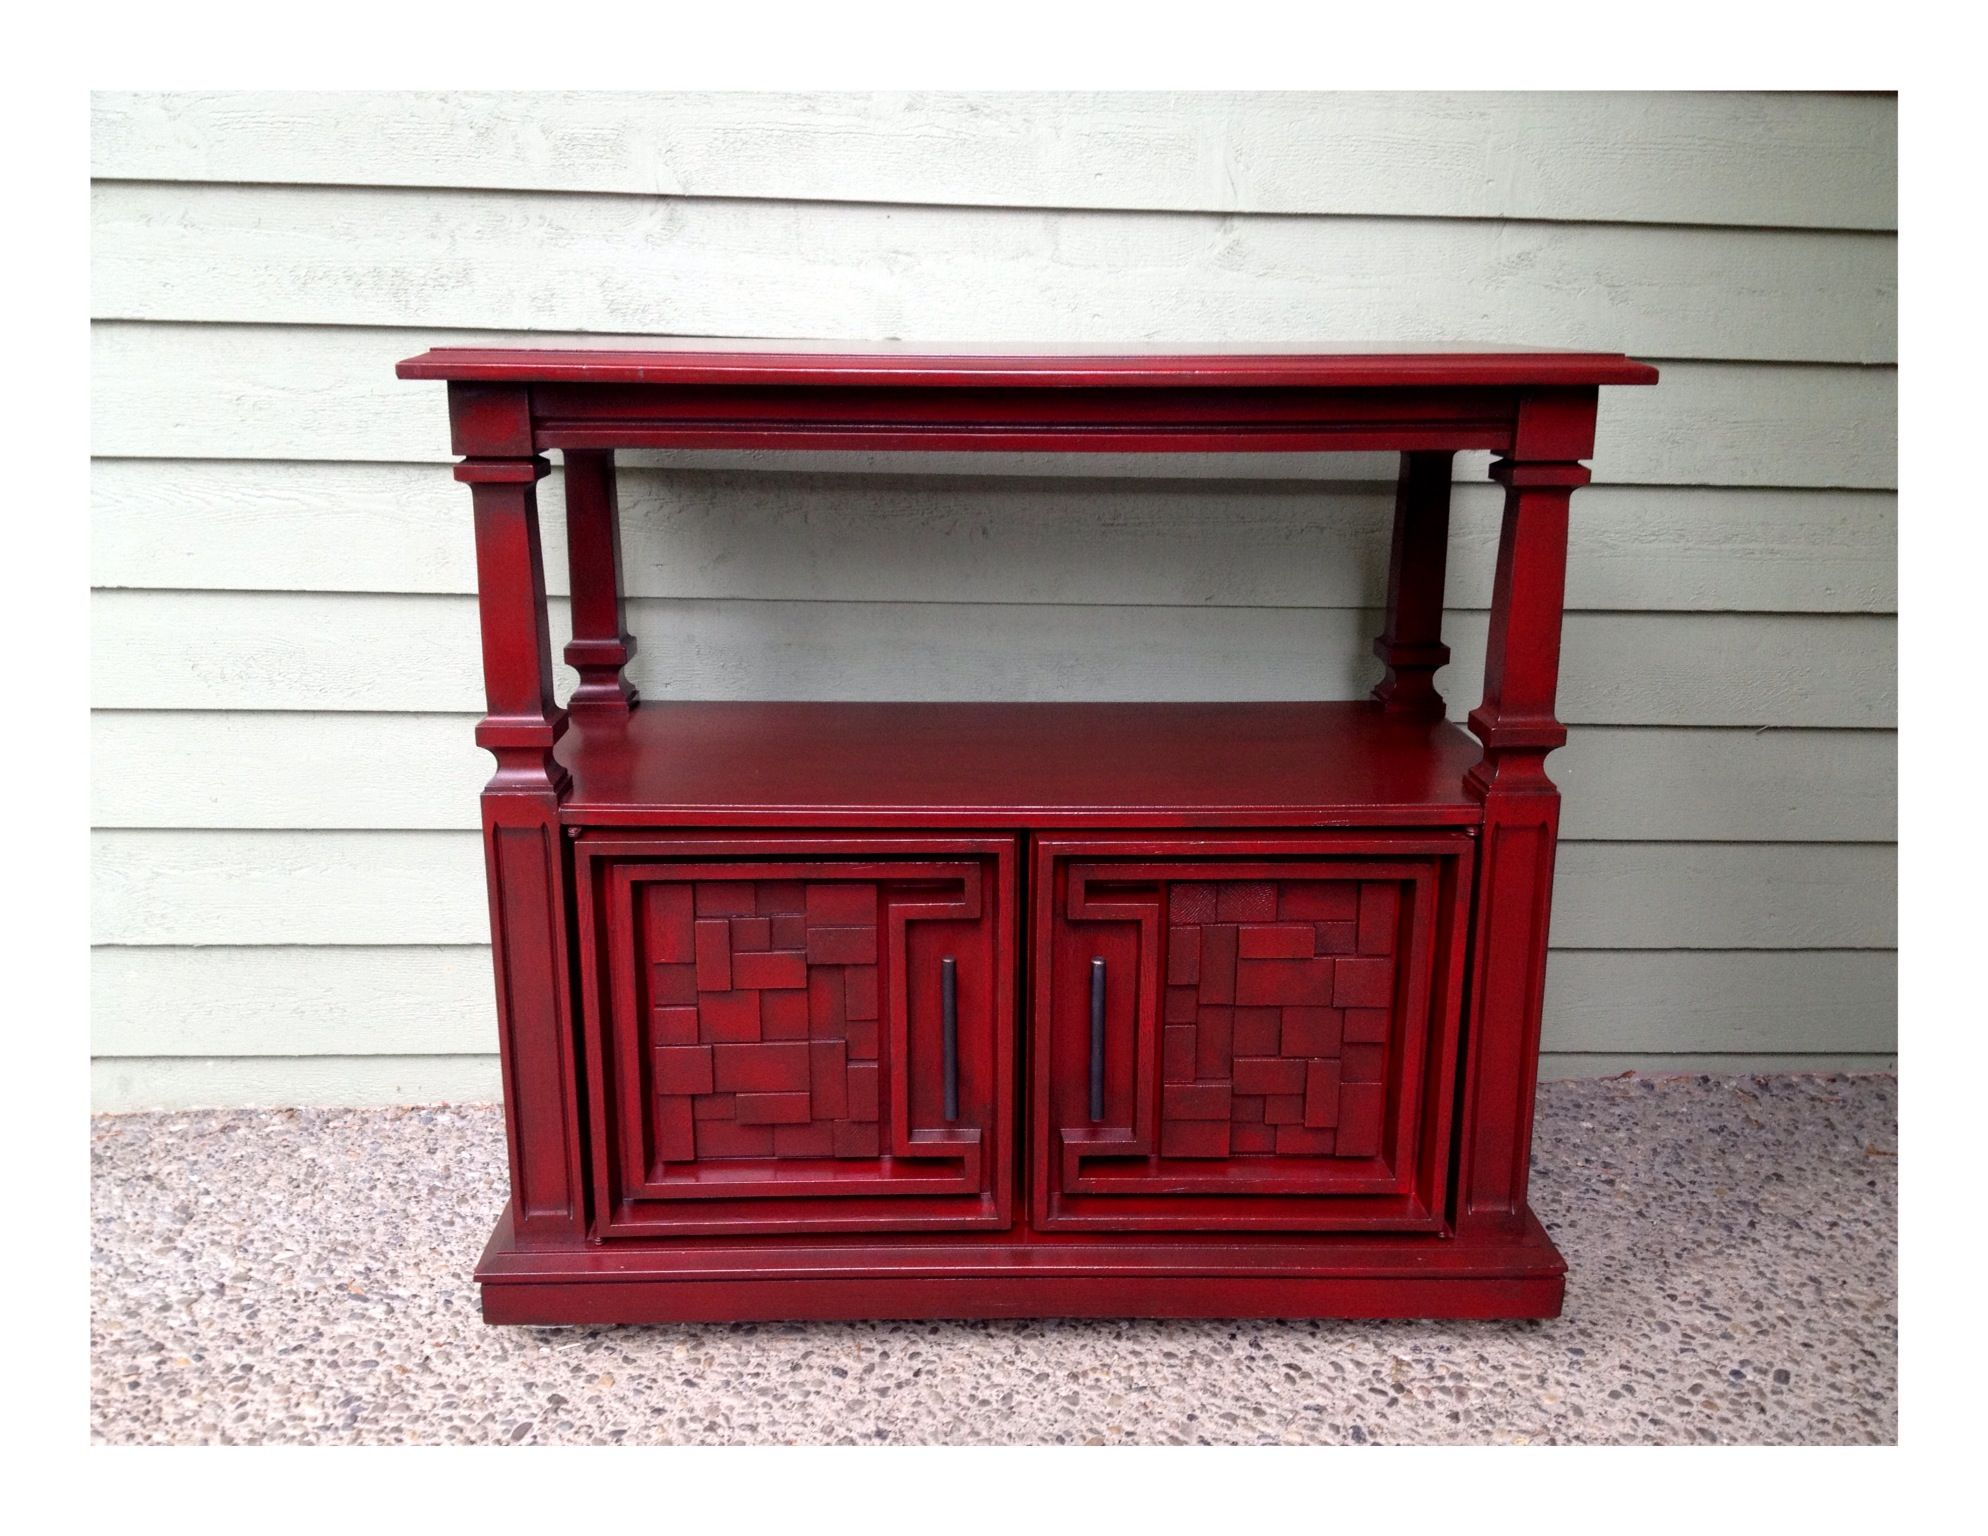 Upcycled cabinet diy inspiration pinterest for Upcycled kitchen cabinets